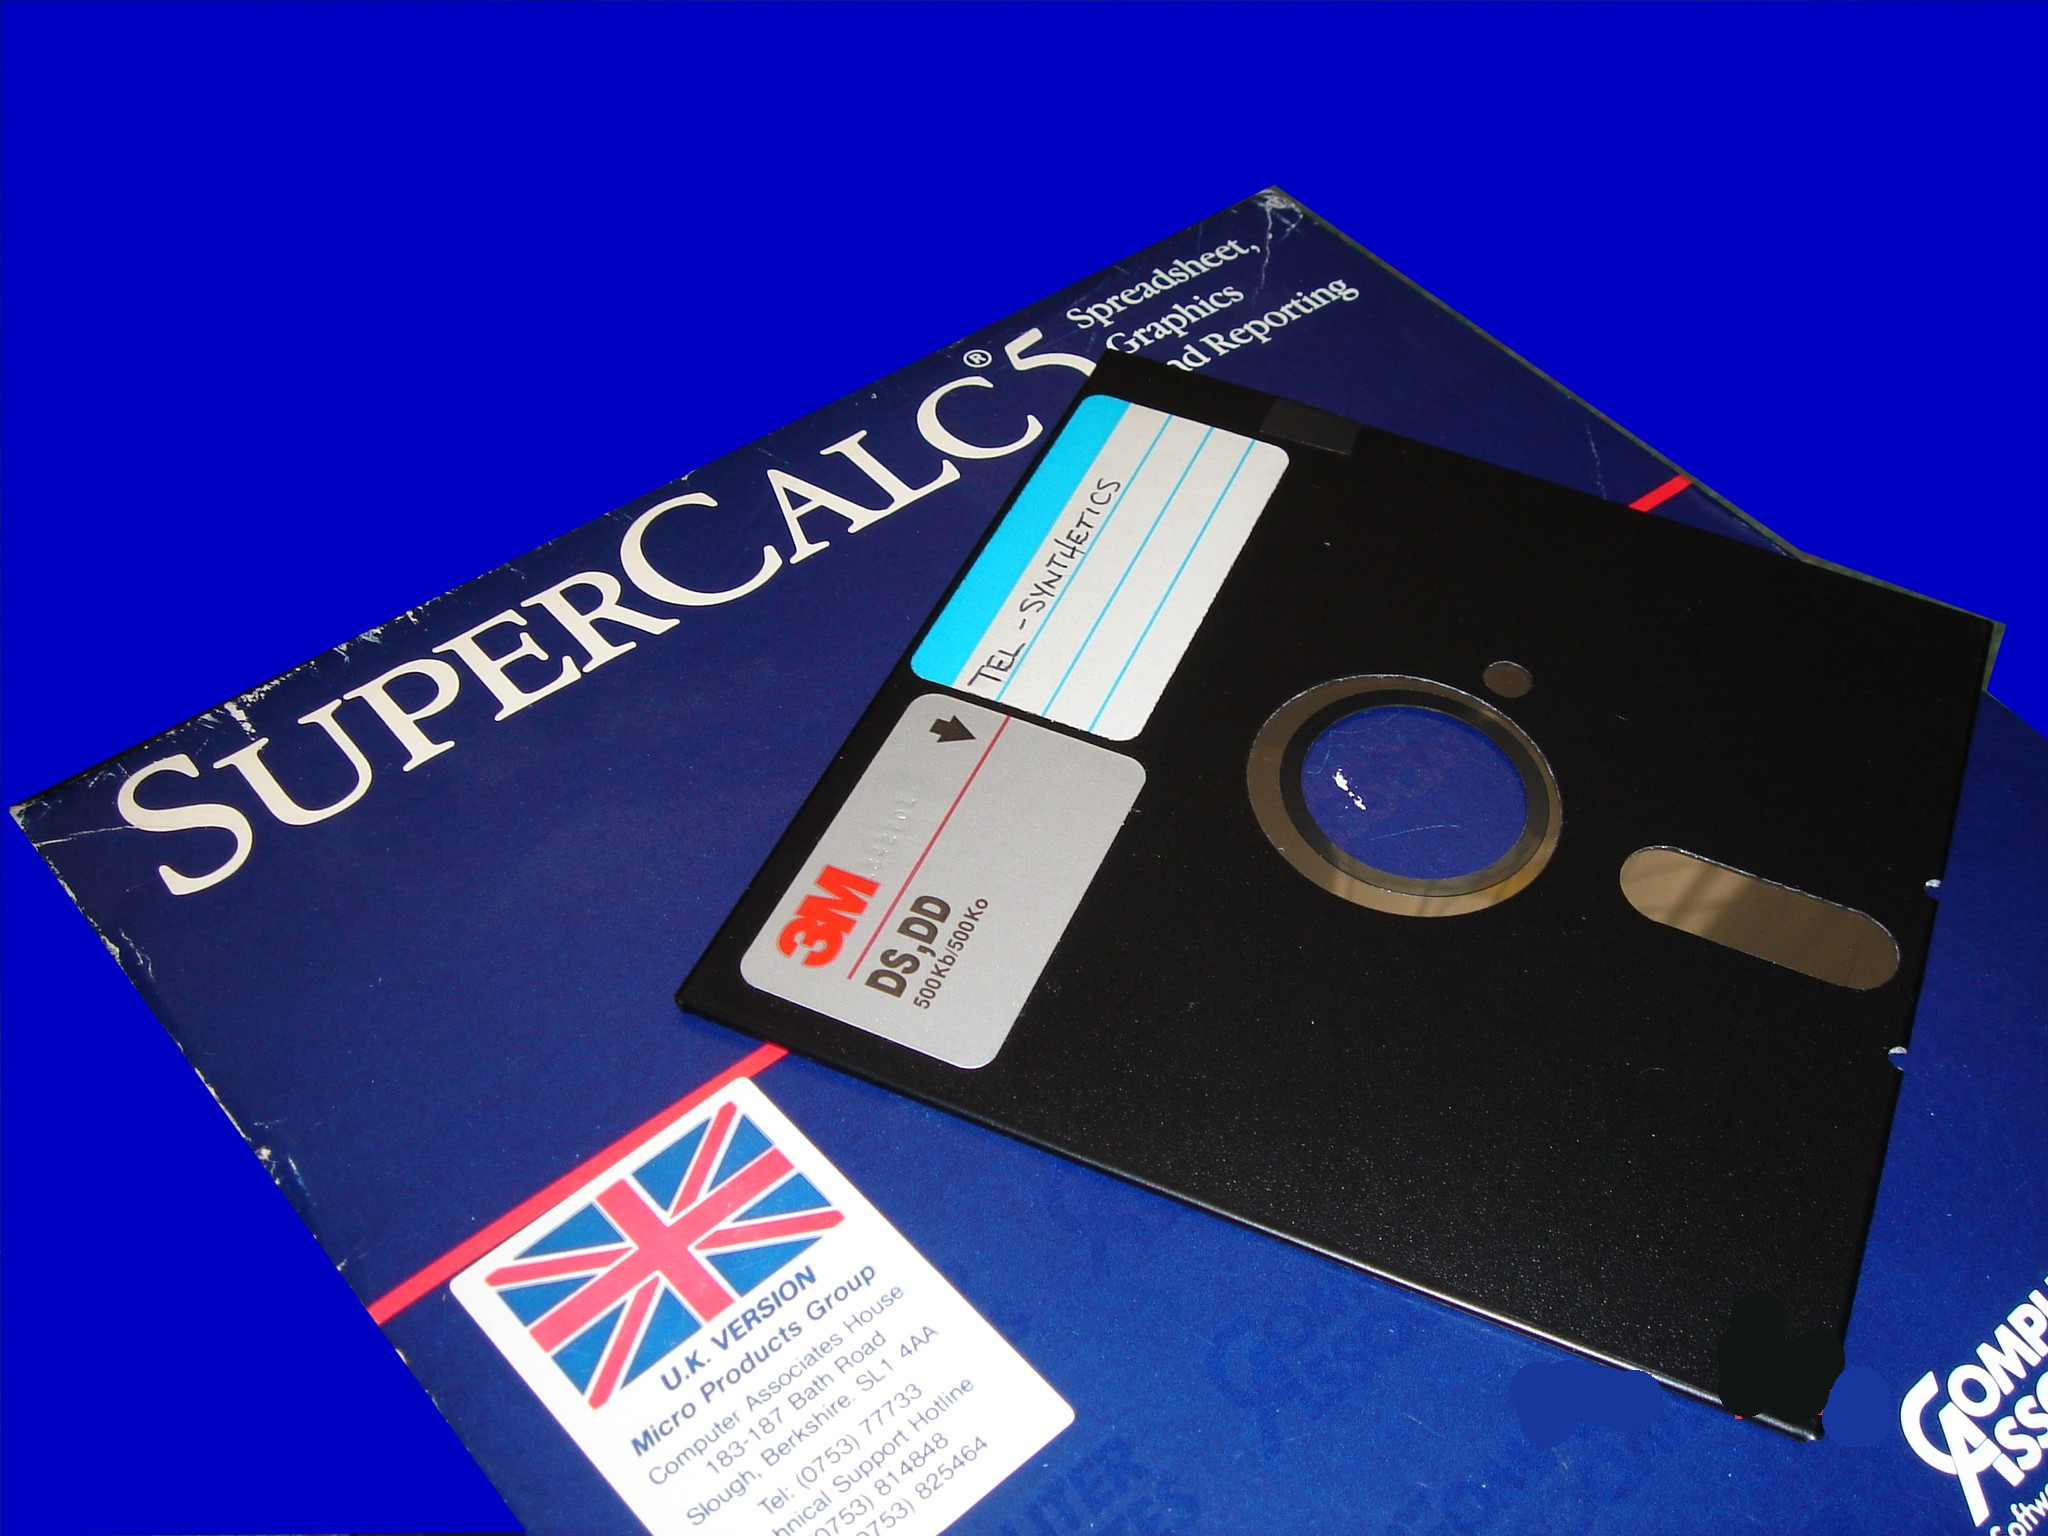 Supercalc spreadsheets being recovered from 5.25 floppy disk and converted to Microsoft Excel office.